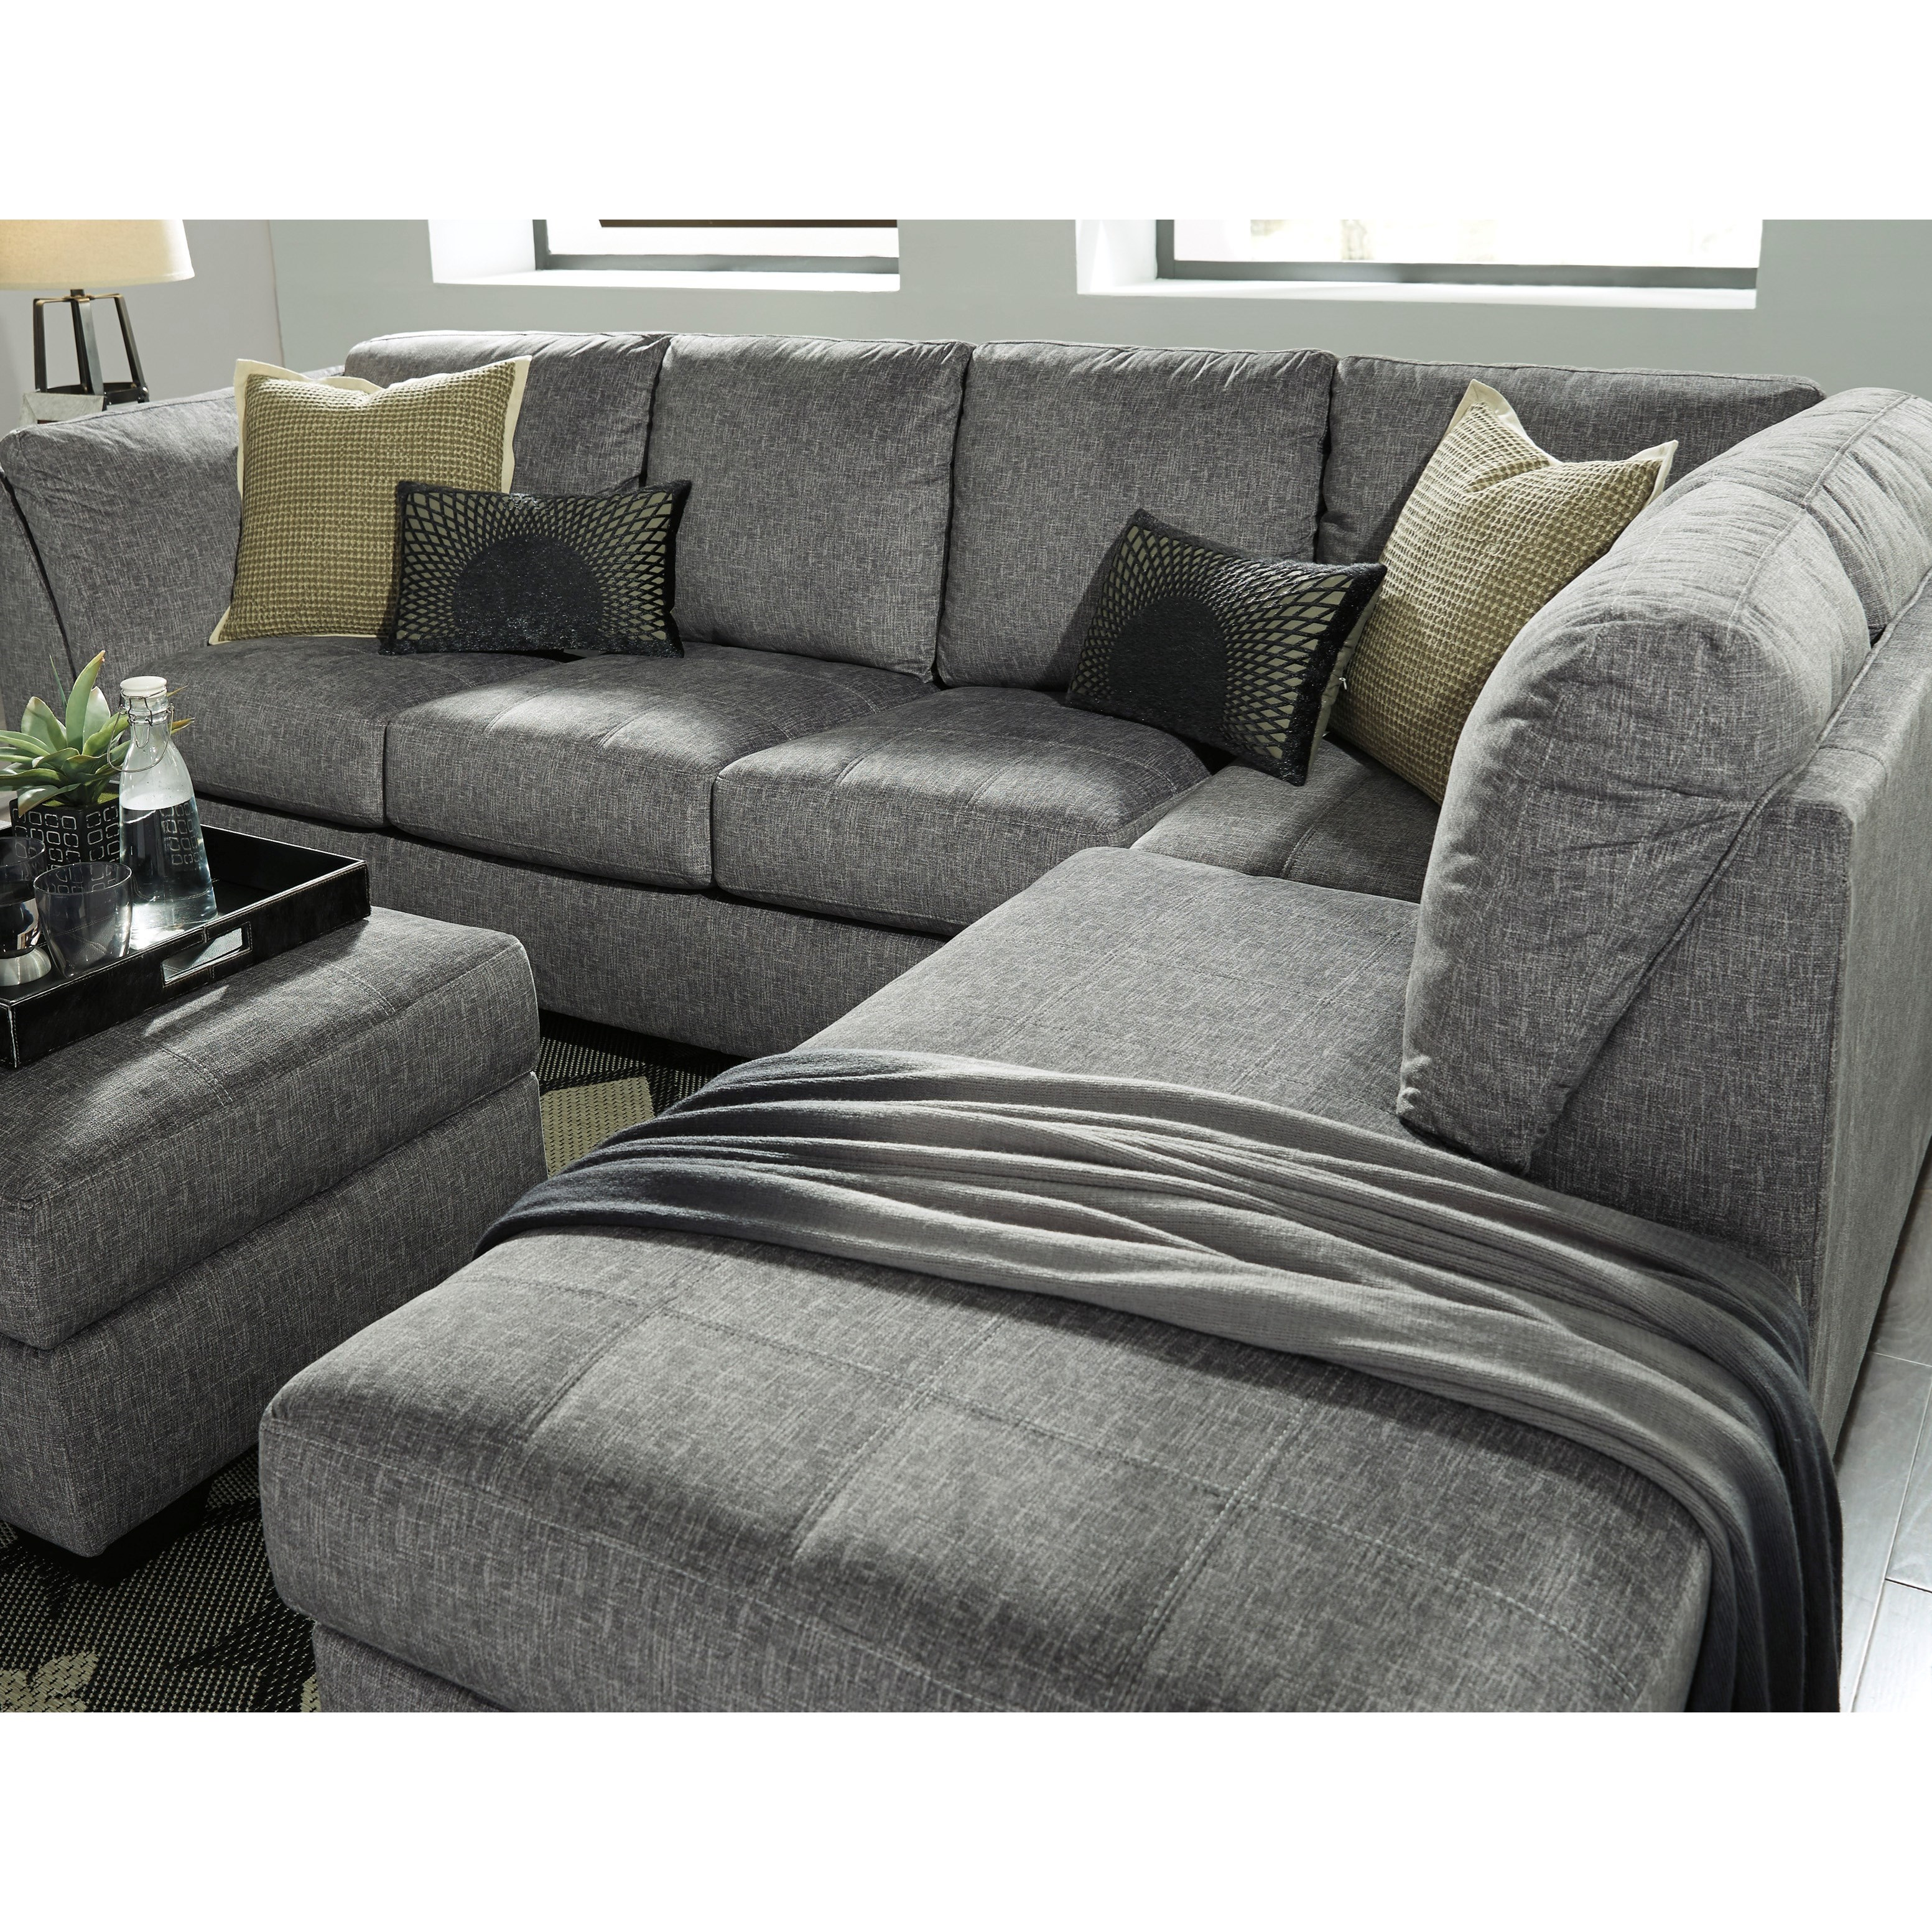 Benchcraft belcastel 2 piece sectional with right chaise for Sectional sofa pieces sold separately